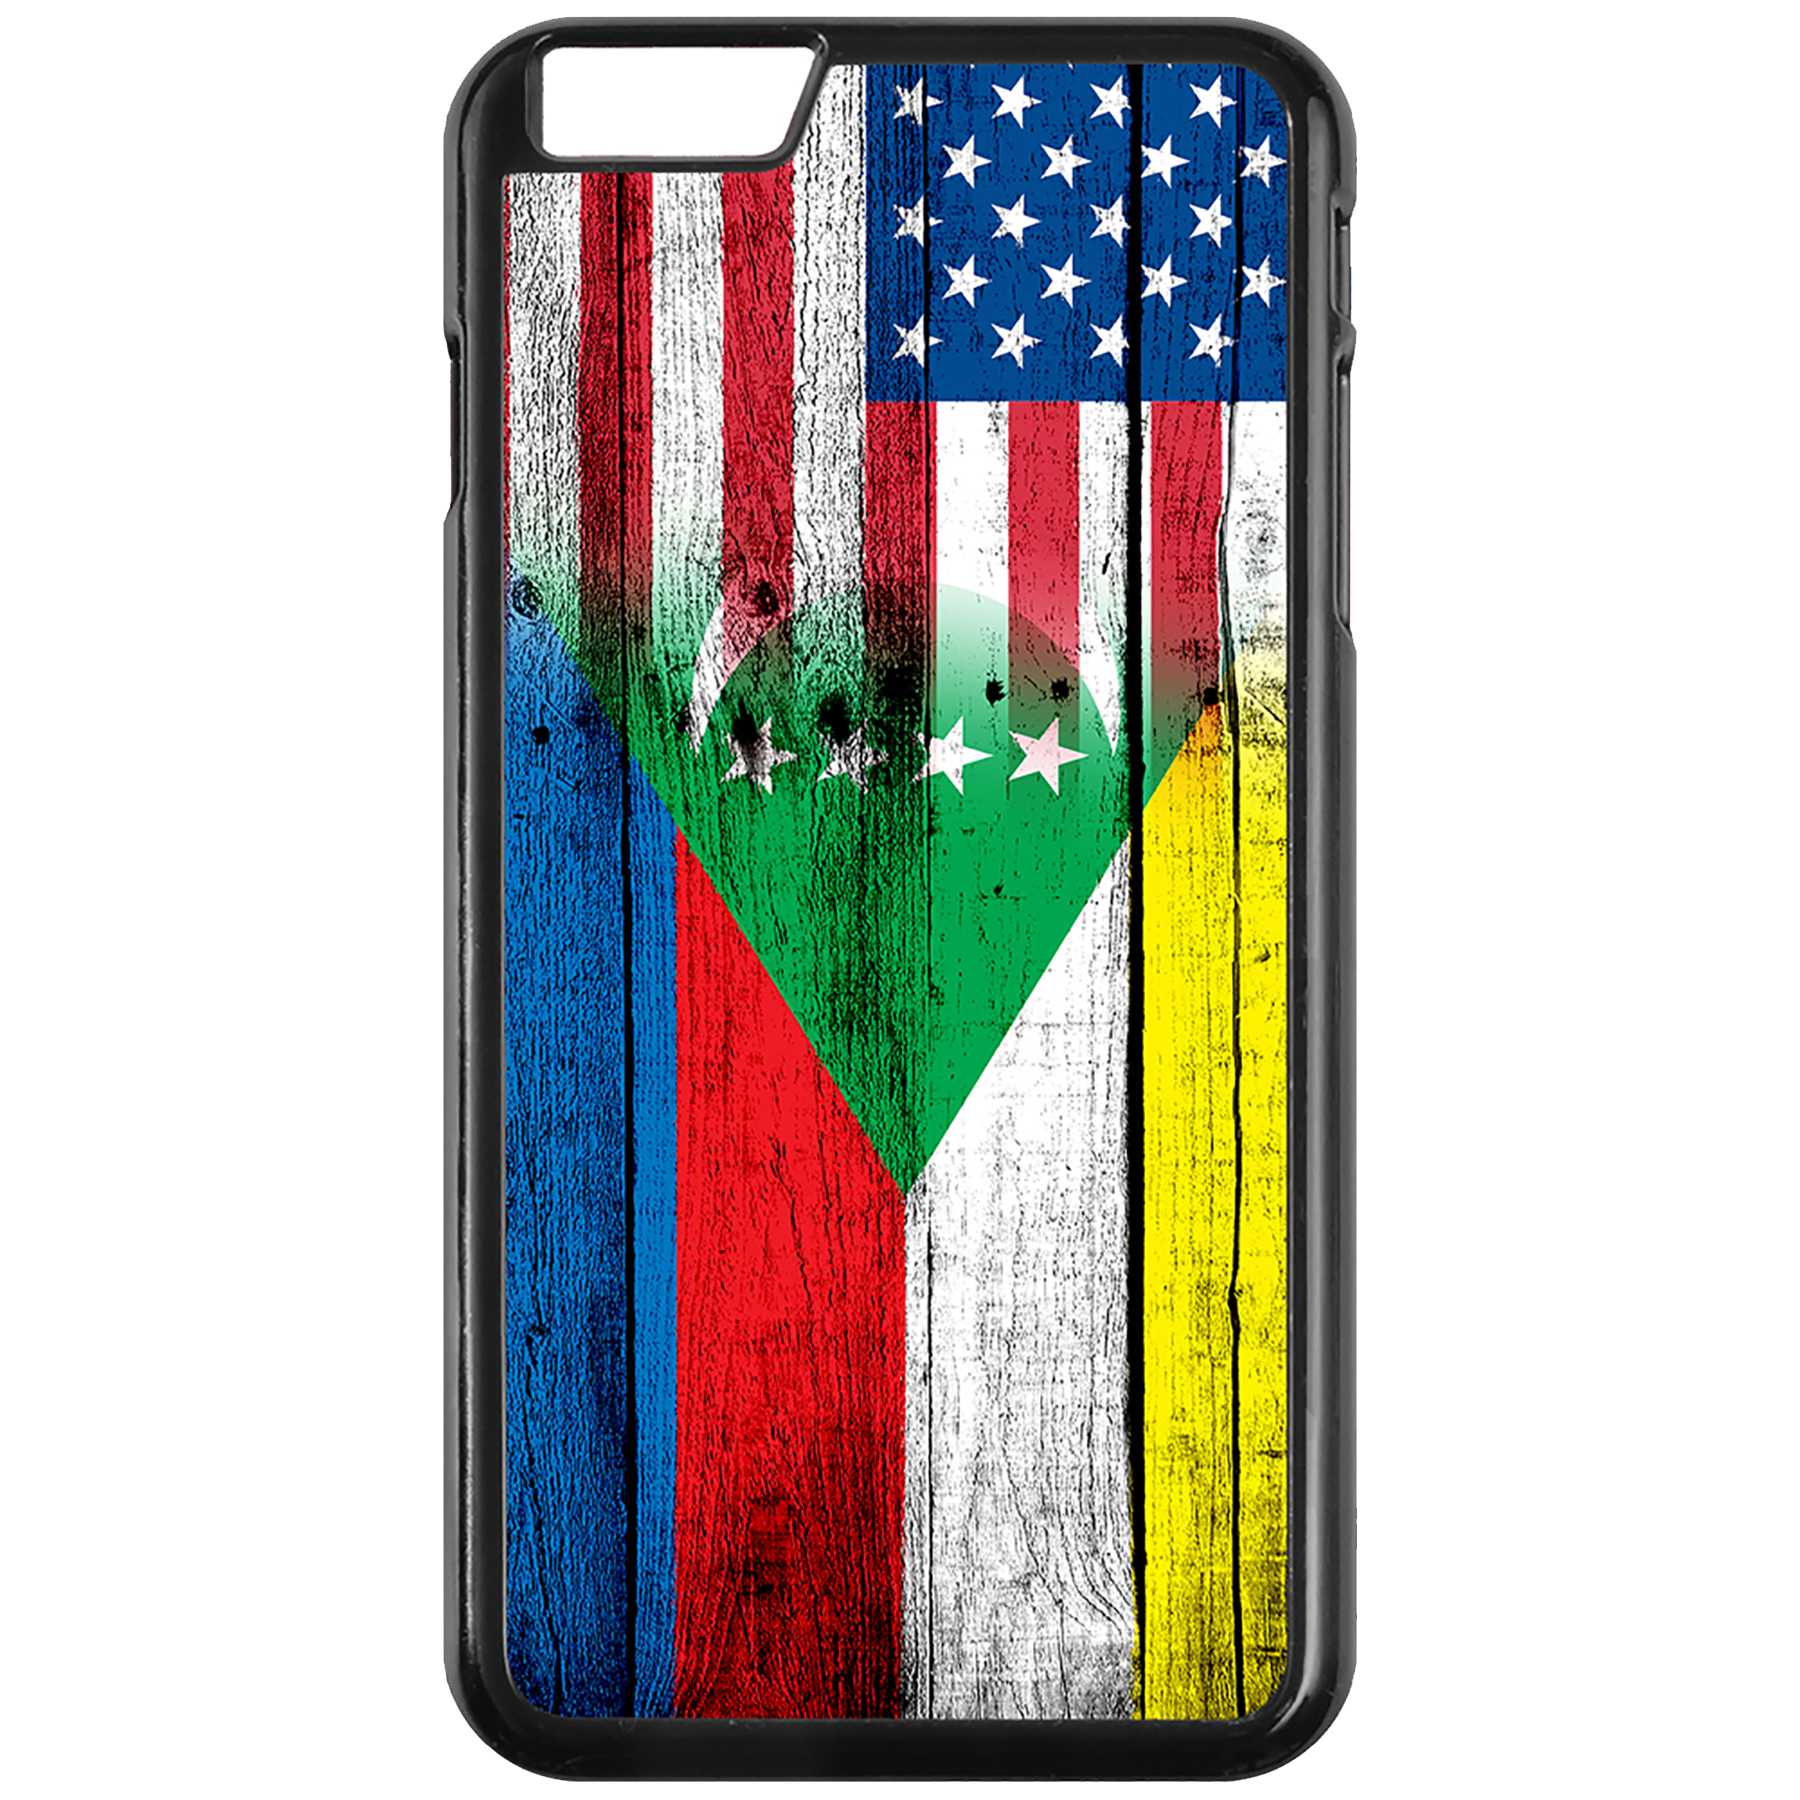 Apple-iPhone-Case-with-Flag-of-Comoros-Comorian-Many-Design-Options thumbnail 21